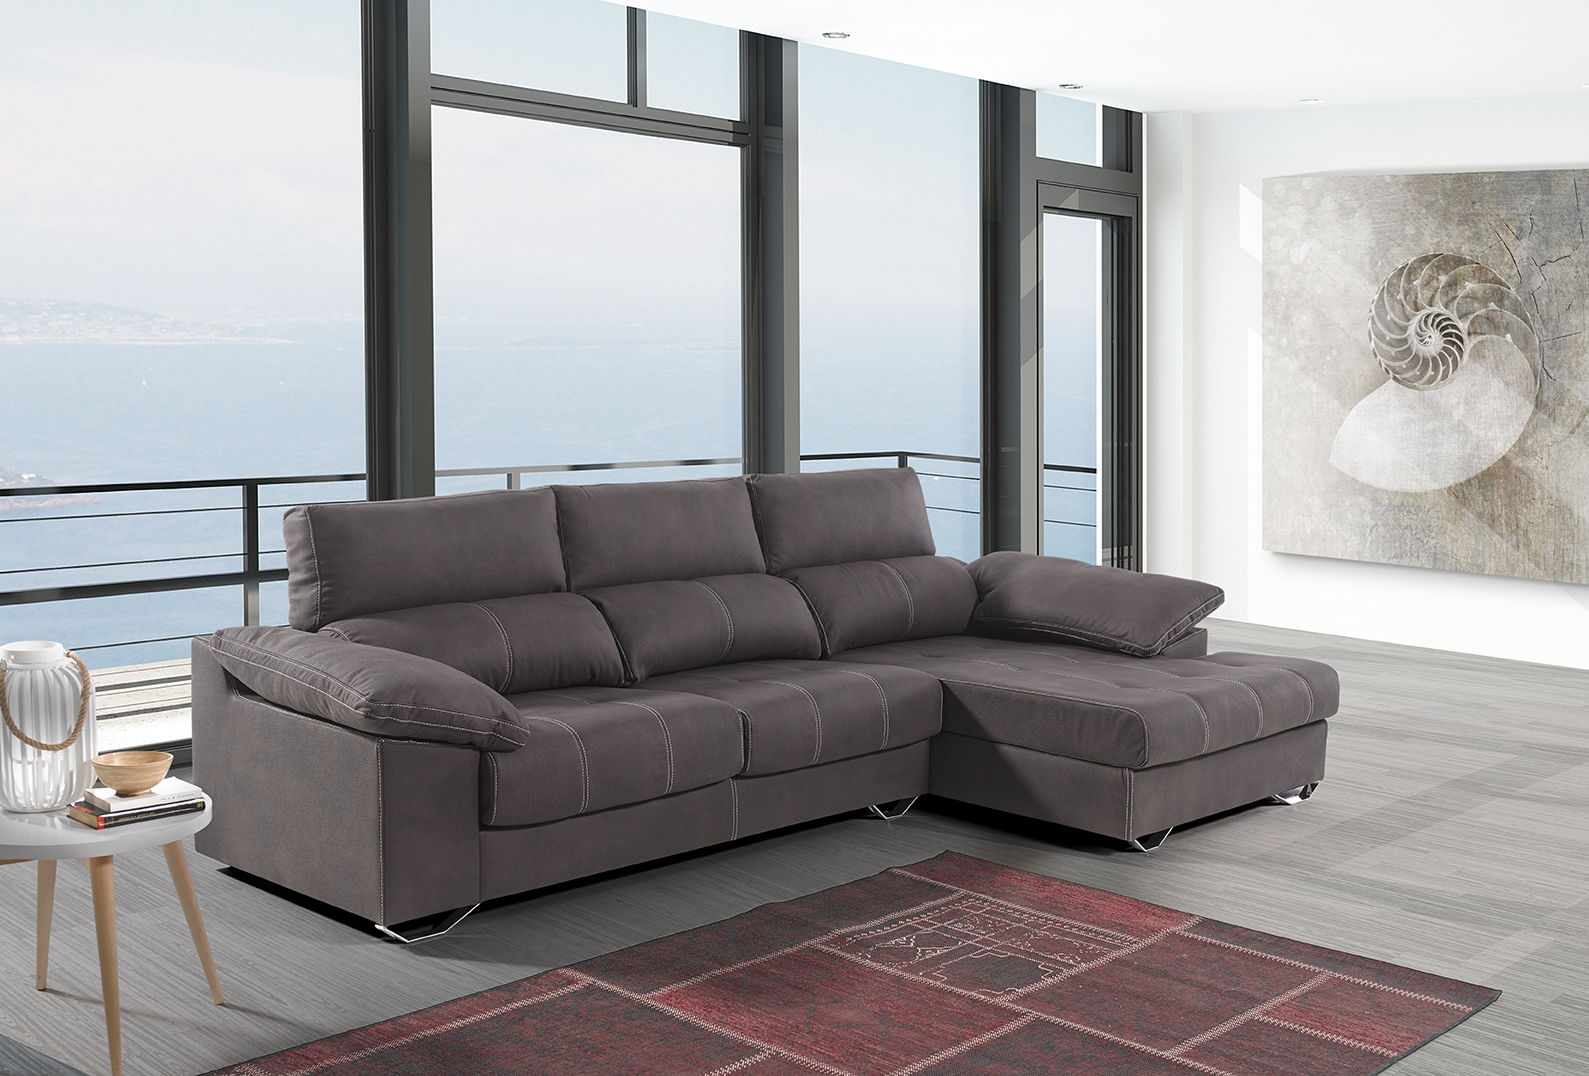 SOFA CON CHAISELONGUE. OFERTA